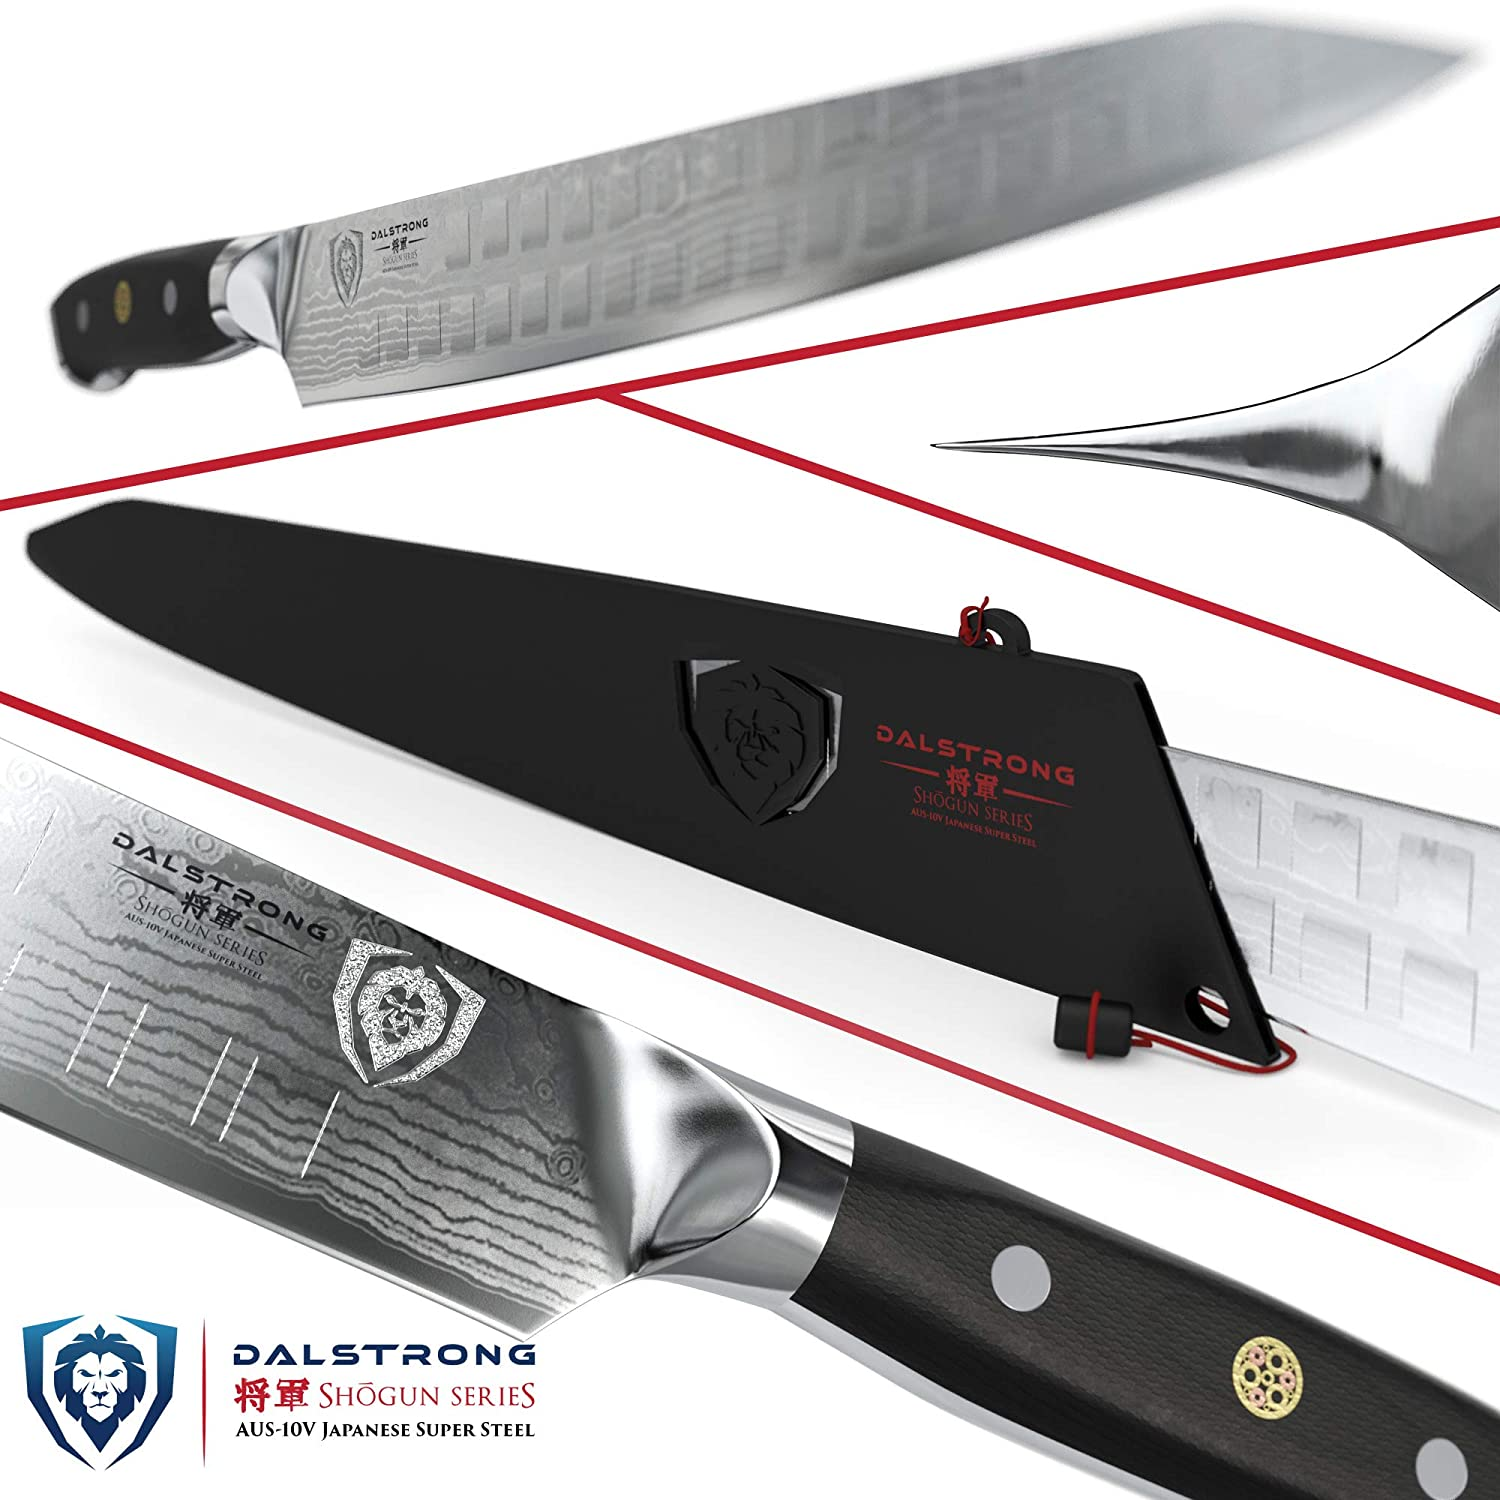 DALSTRONG Ultimate Slicing Knife - The